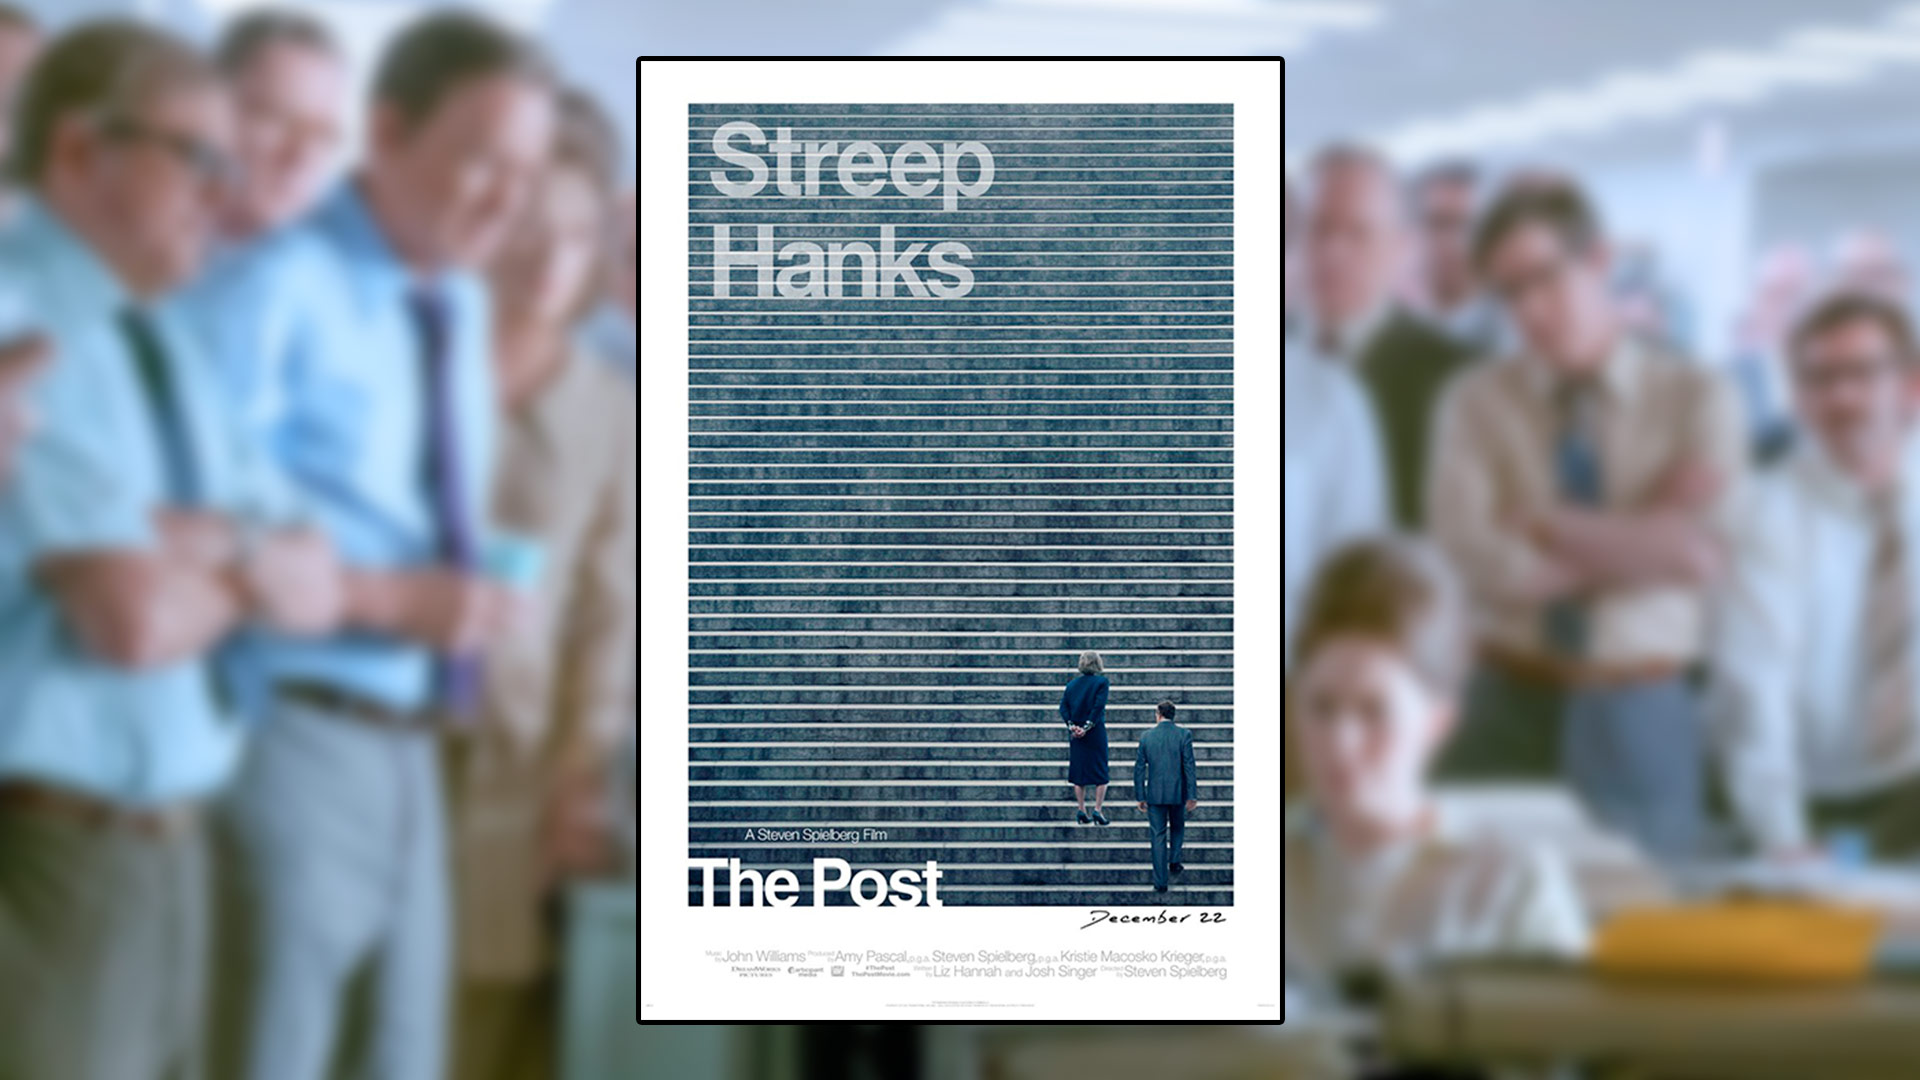 Critique du film The Post réalisé par Steven Spielberg